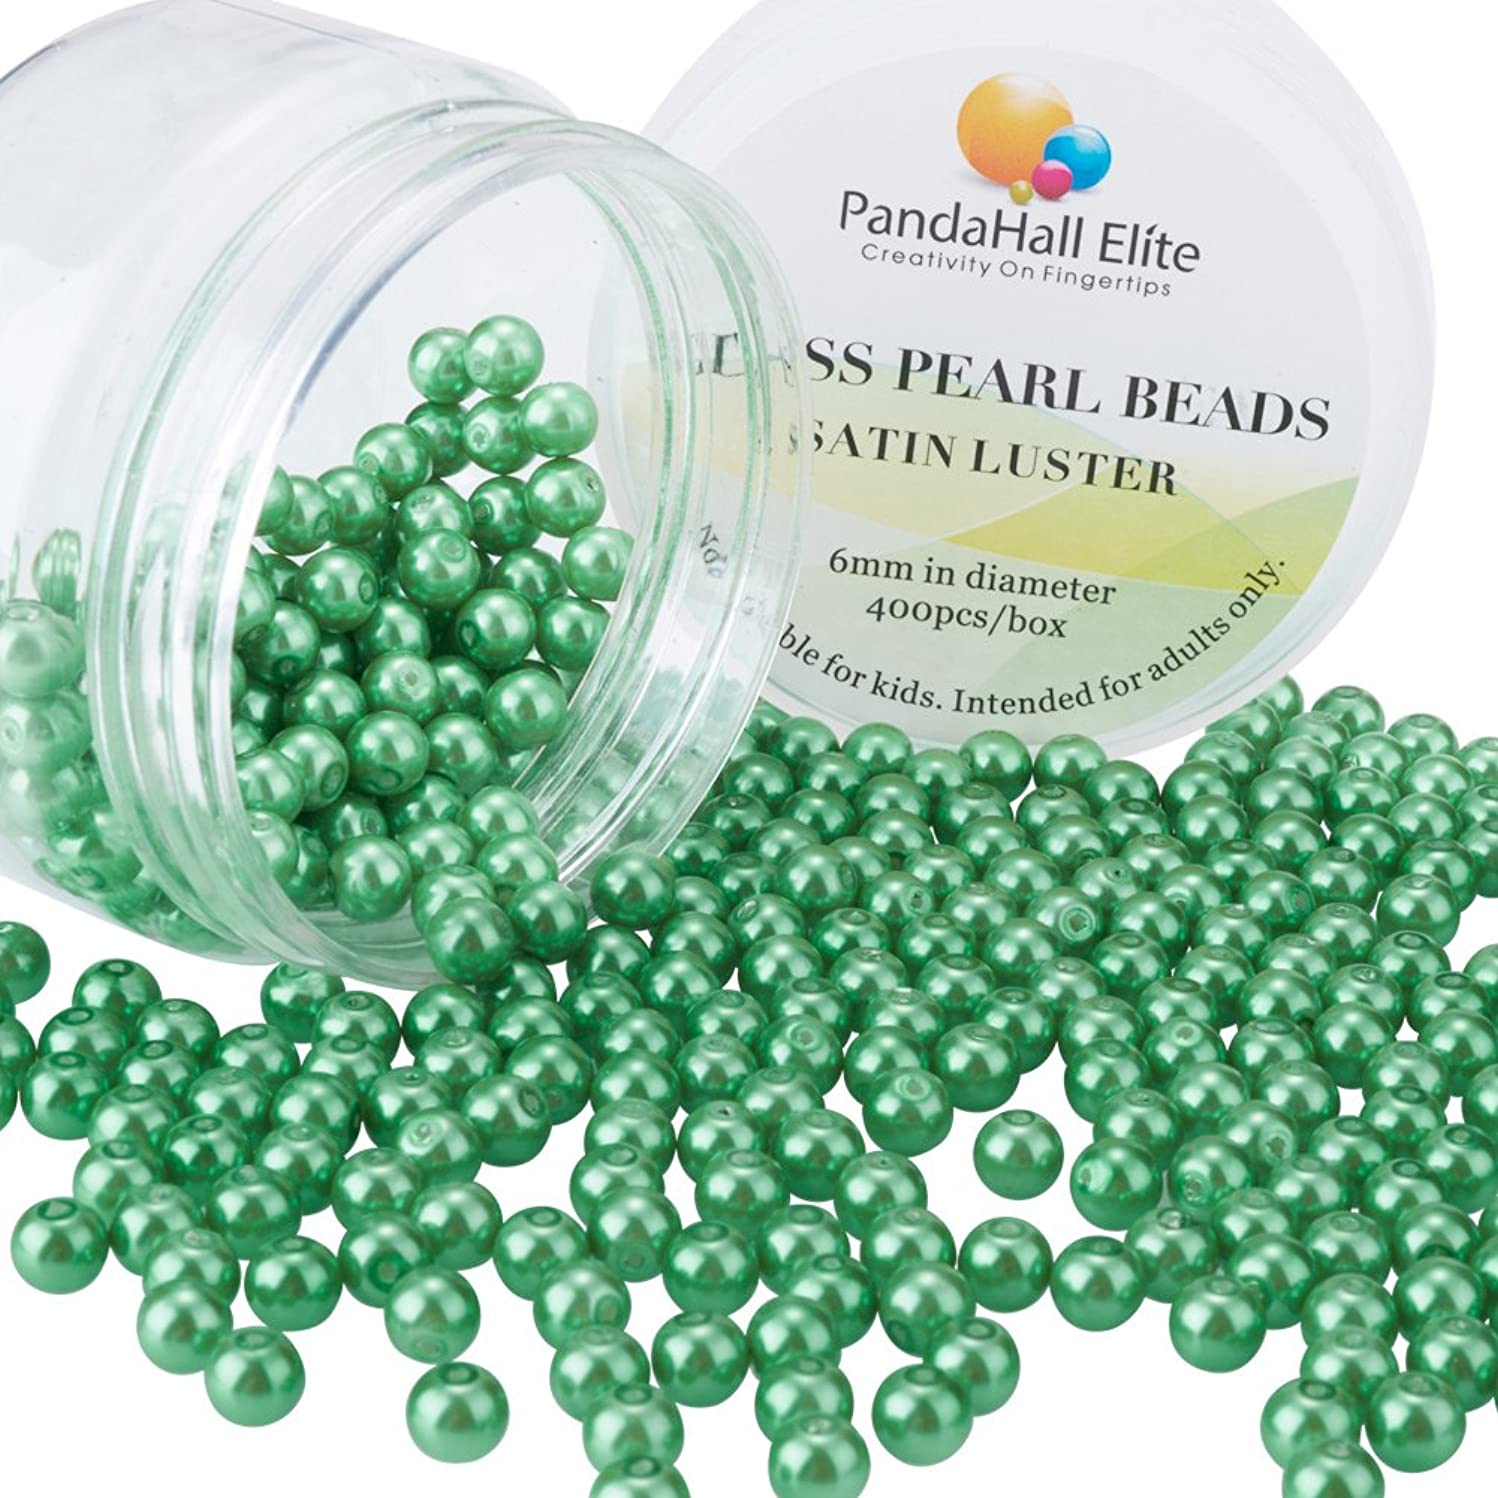 PandaHall Elite 6mm About 400Pcs Tiny Satin Luster Glass Pearl Round Beads Assortment Lot for Jewelry Making Round Box Kit Green